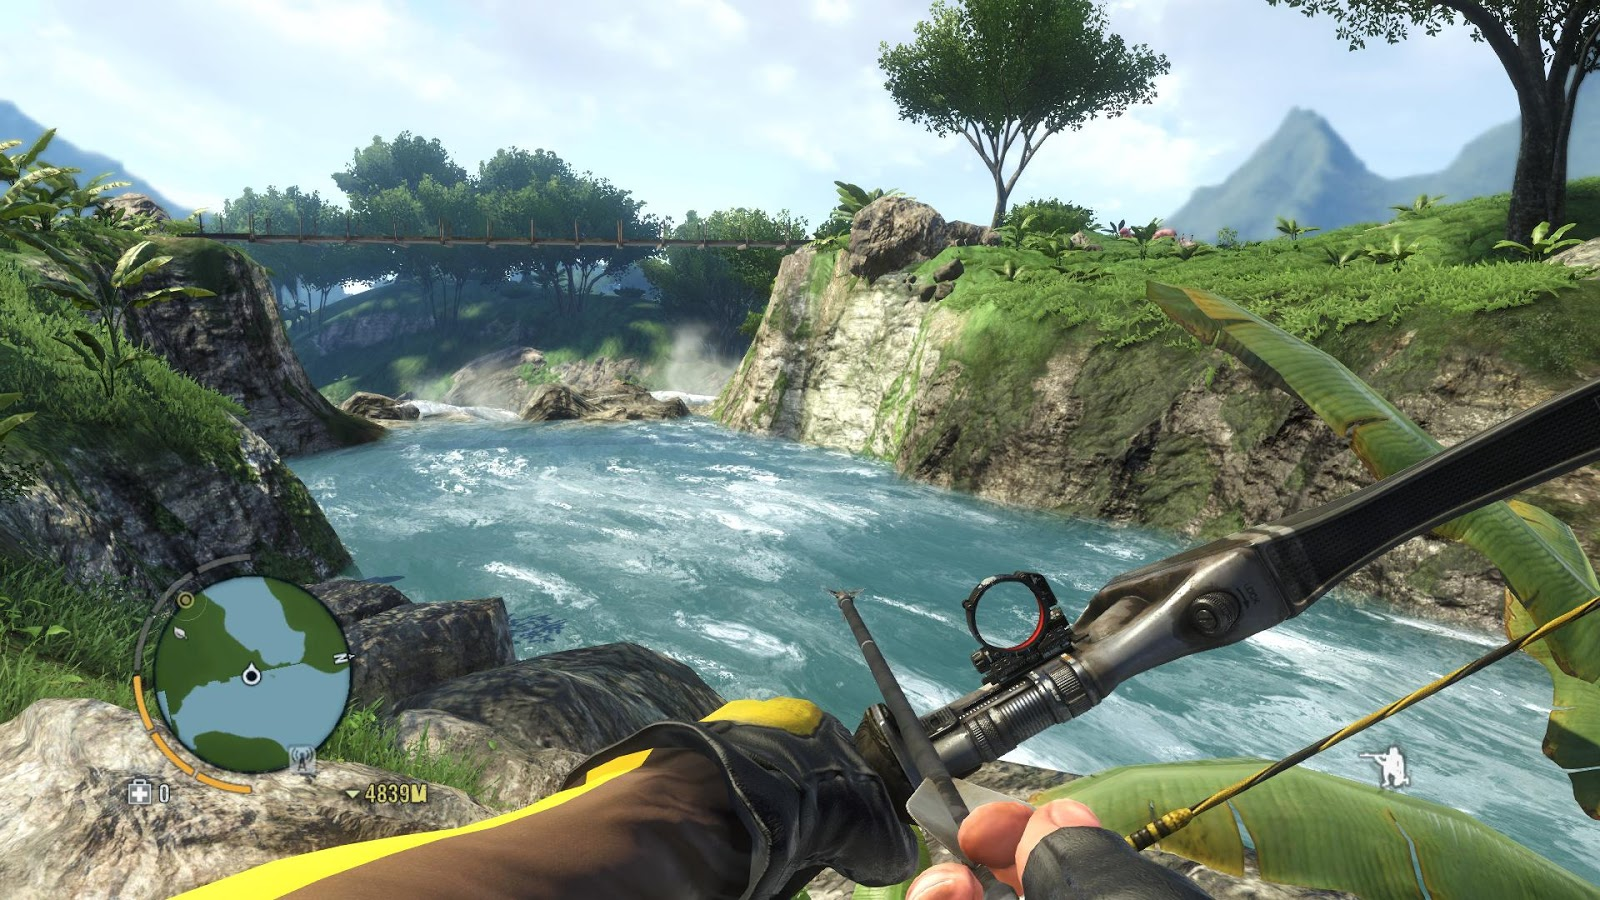 Far cry 3 uplay crack free download | Far Cry 3 PC Game Free